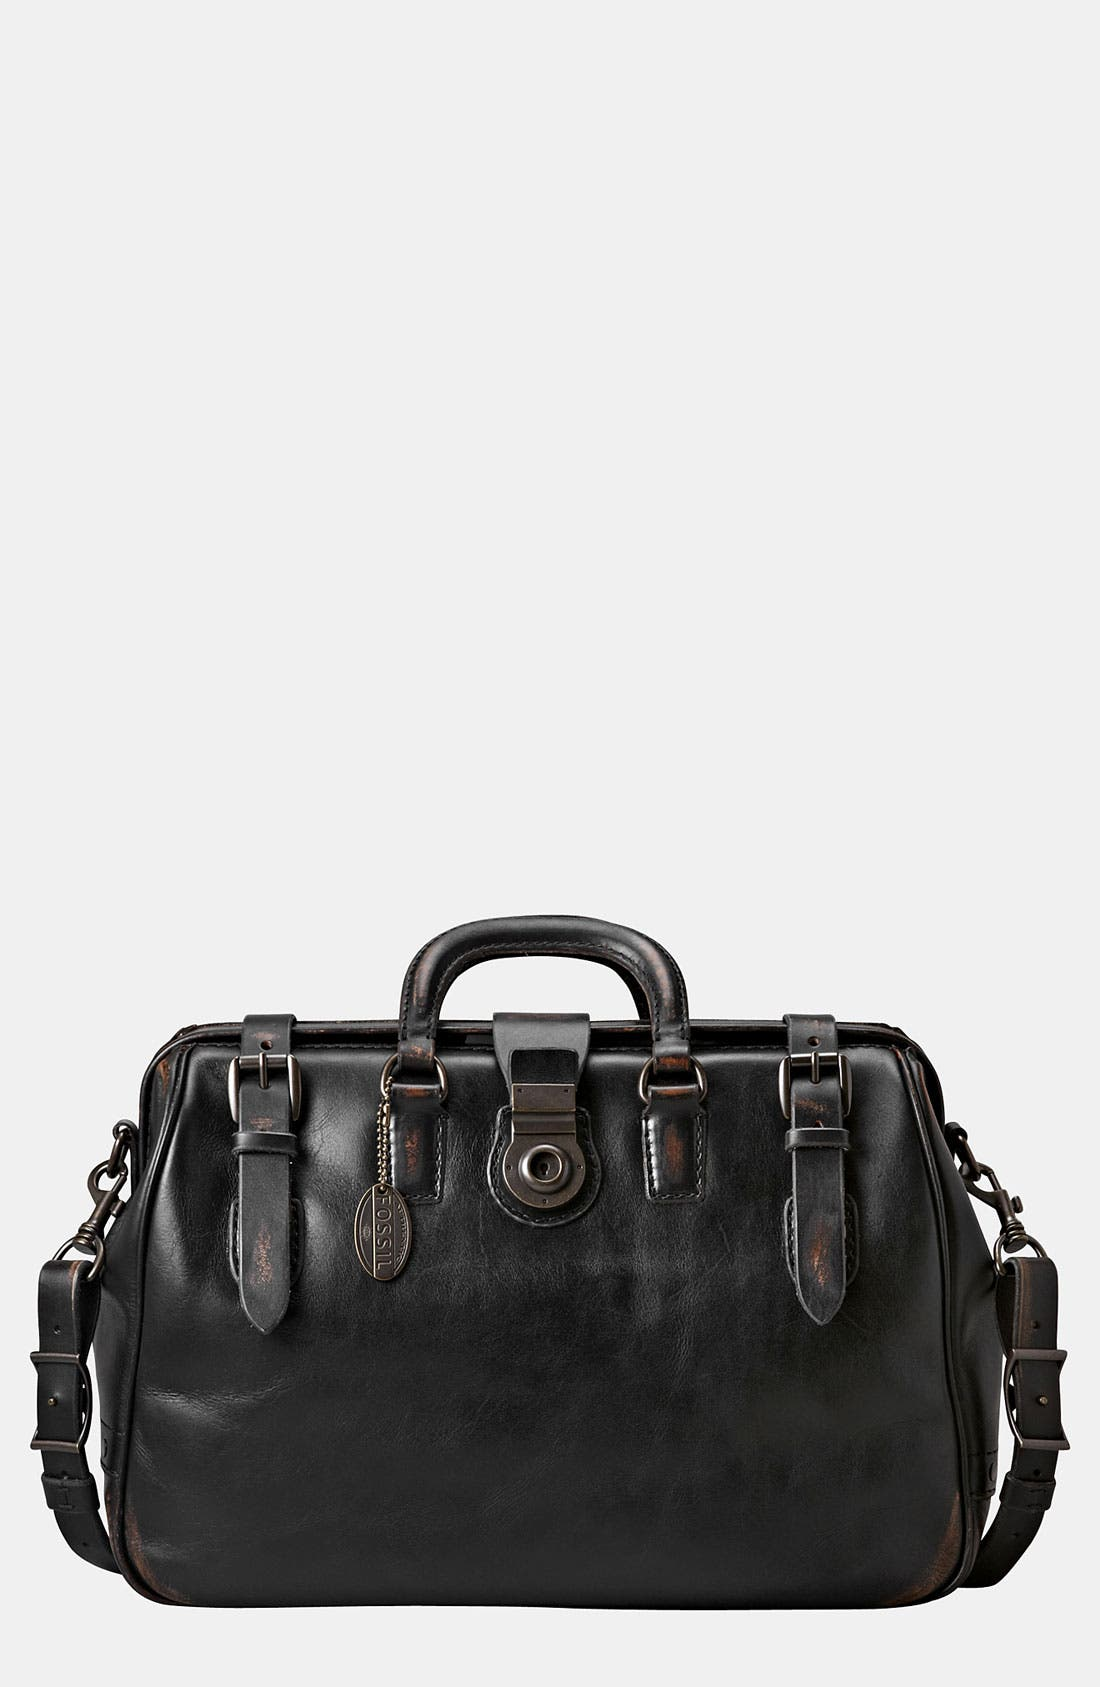 Alternate Image 1 Selected - Fossil 'Edition' Leather Carpenter Bag